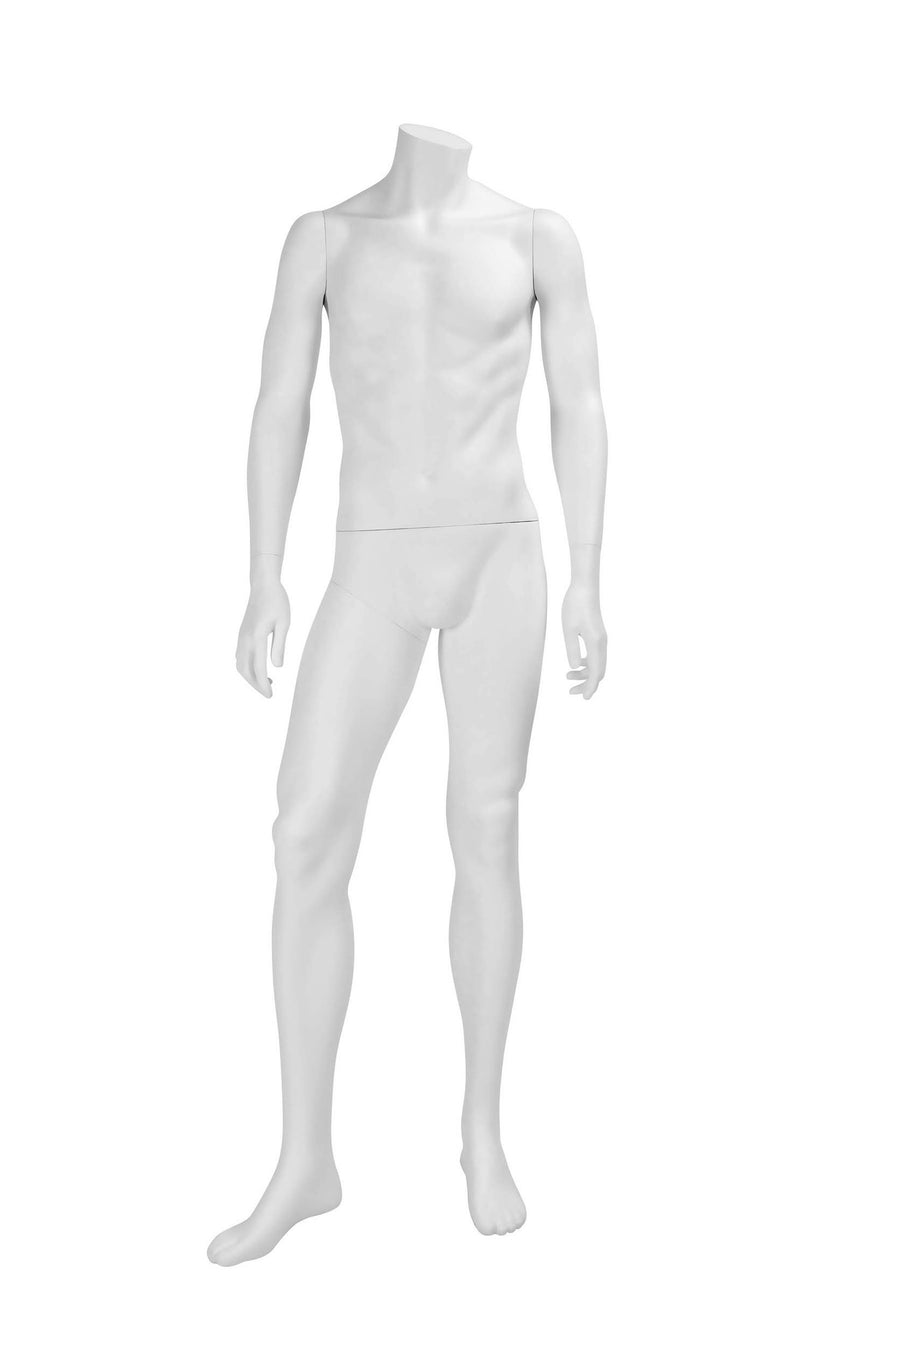 Headless Male Mannequin Pos. 02